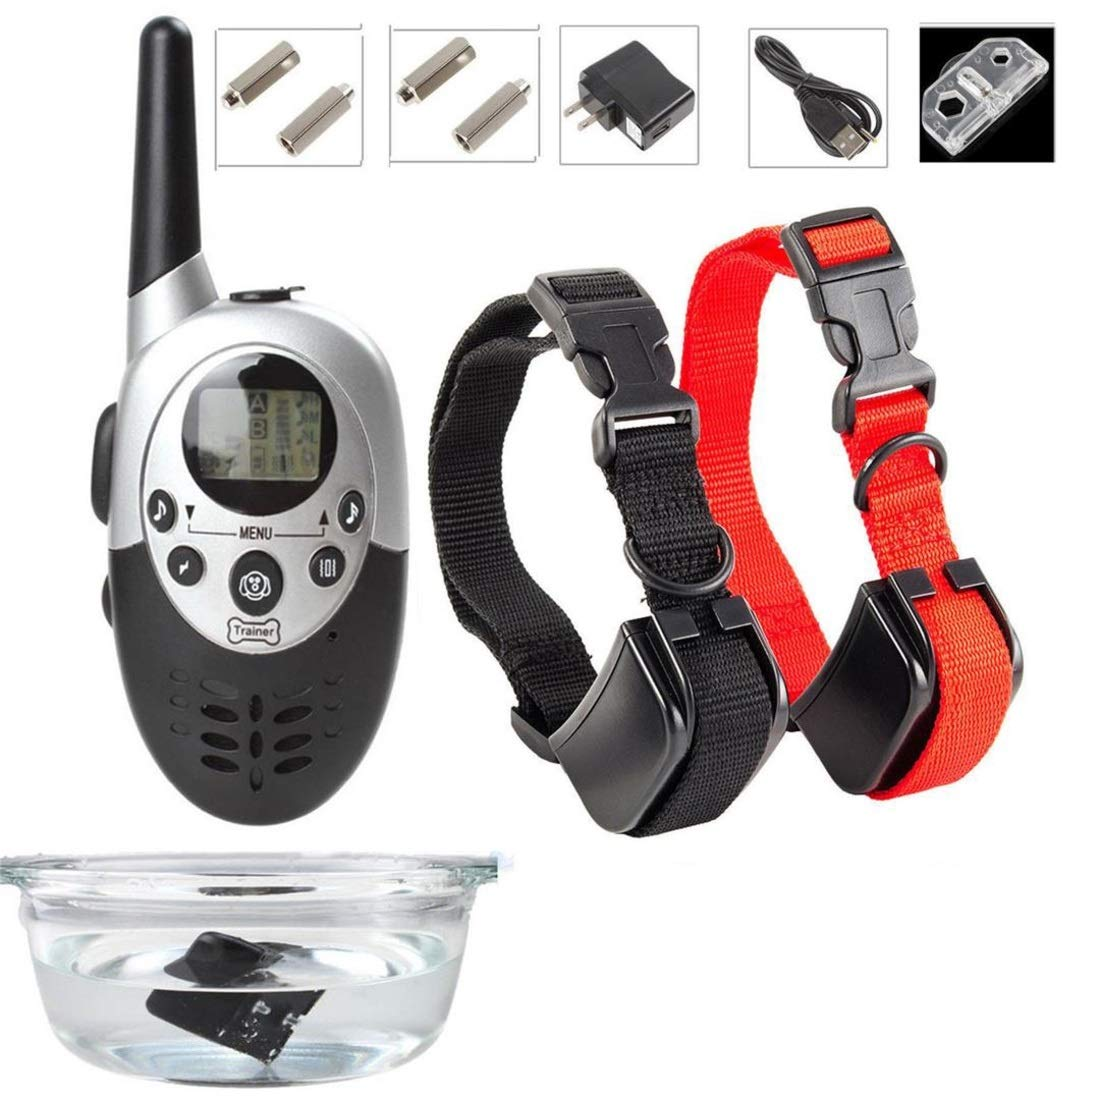 6132 Kajuer Rainproy Dog Shock Collar con Remote Dog Training Collar, Training Device Every Dog Owner (Dimensione: M86)